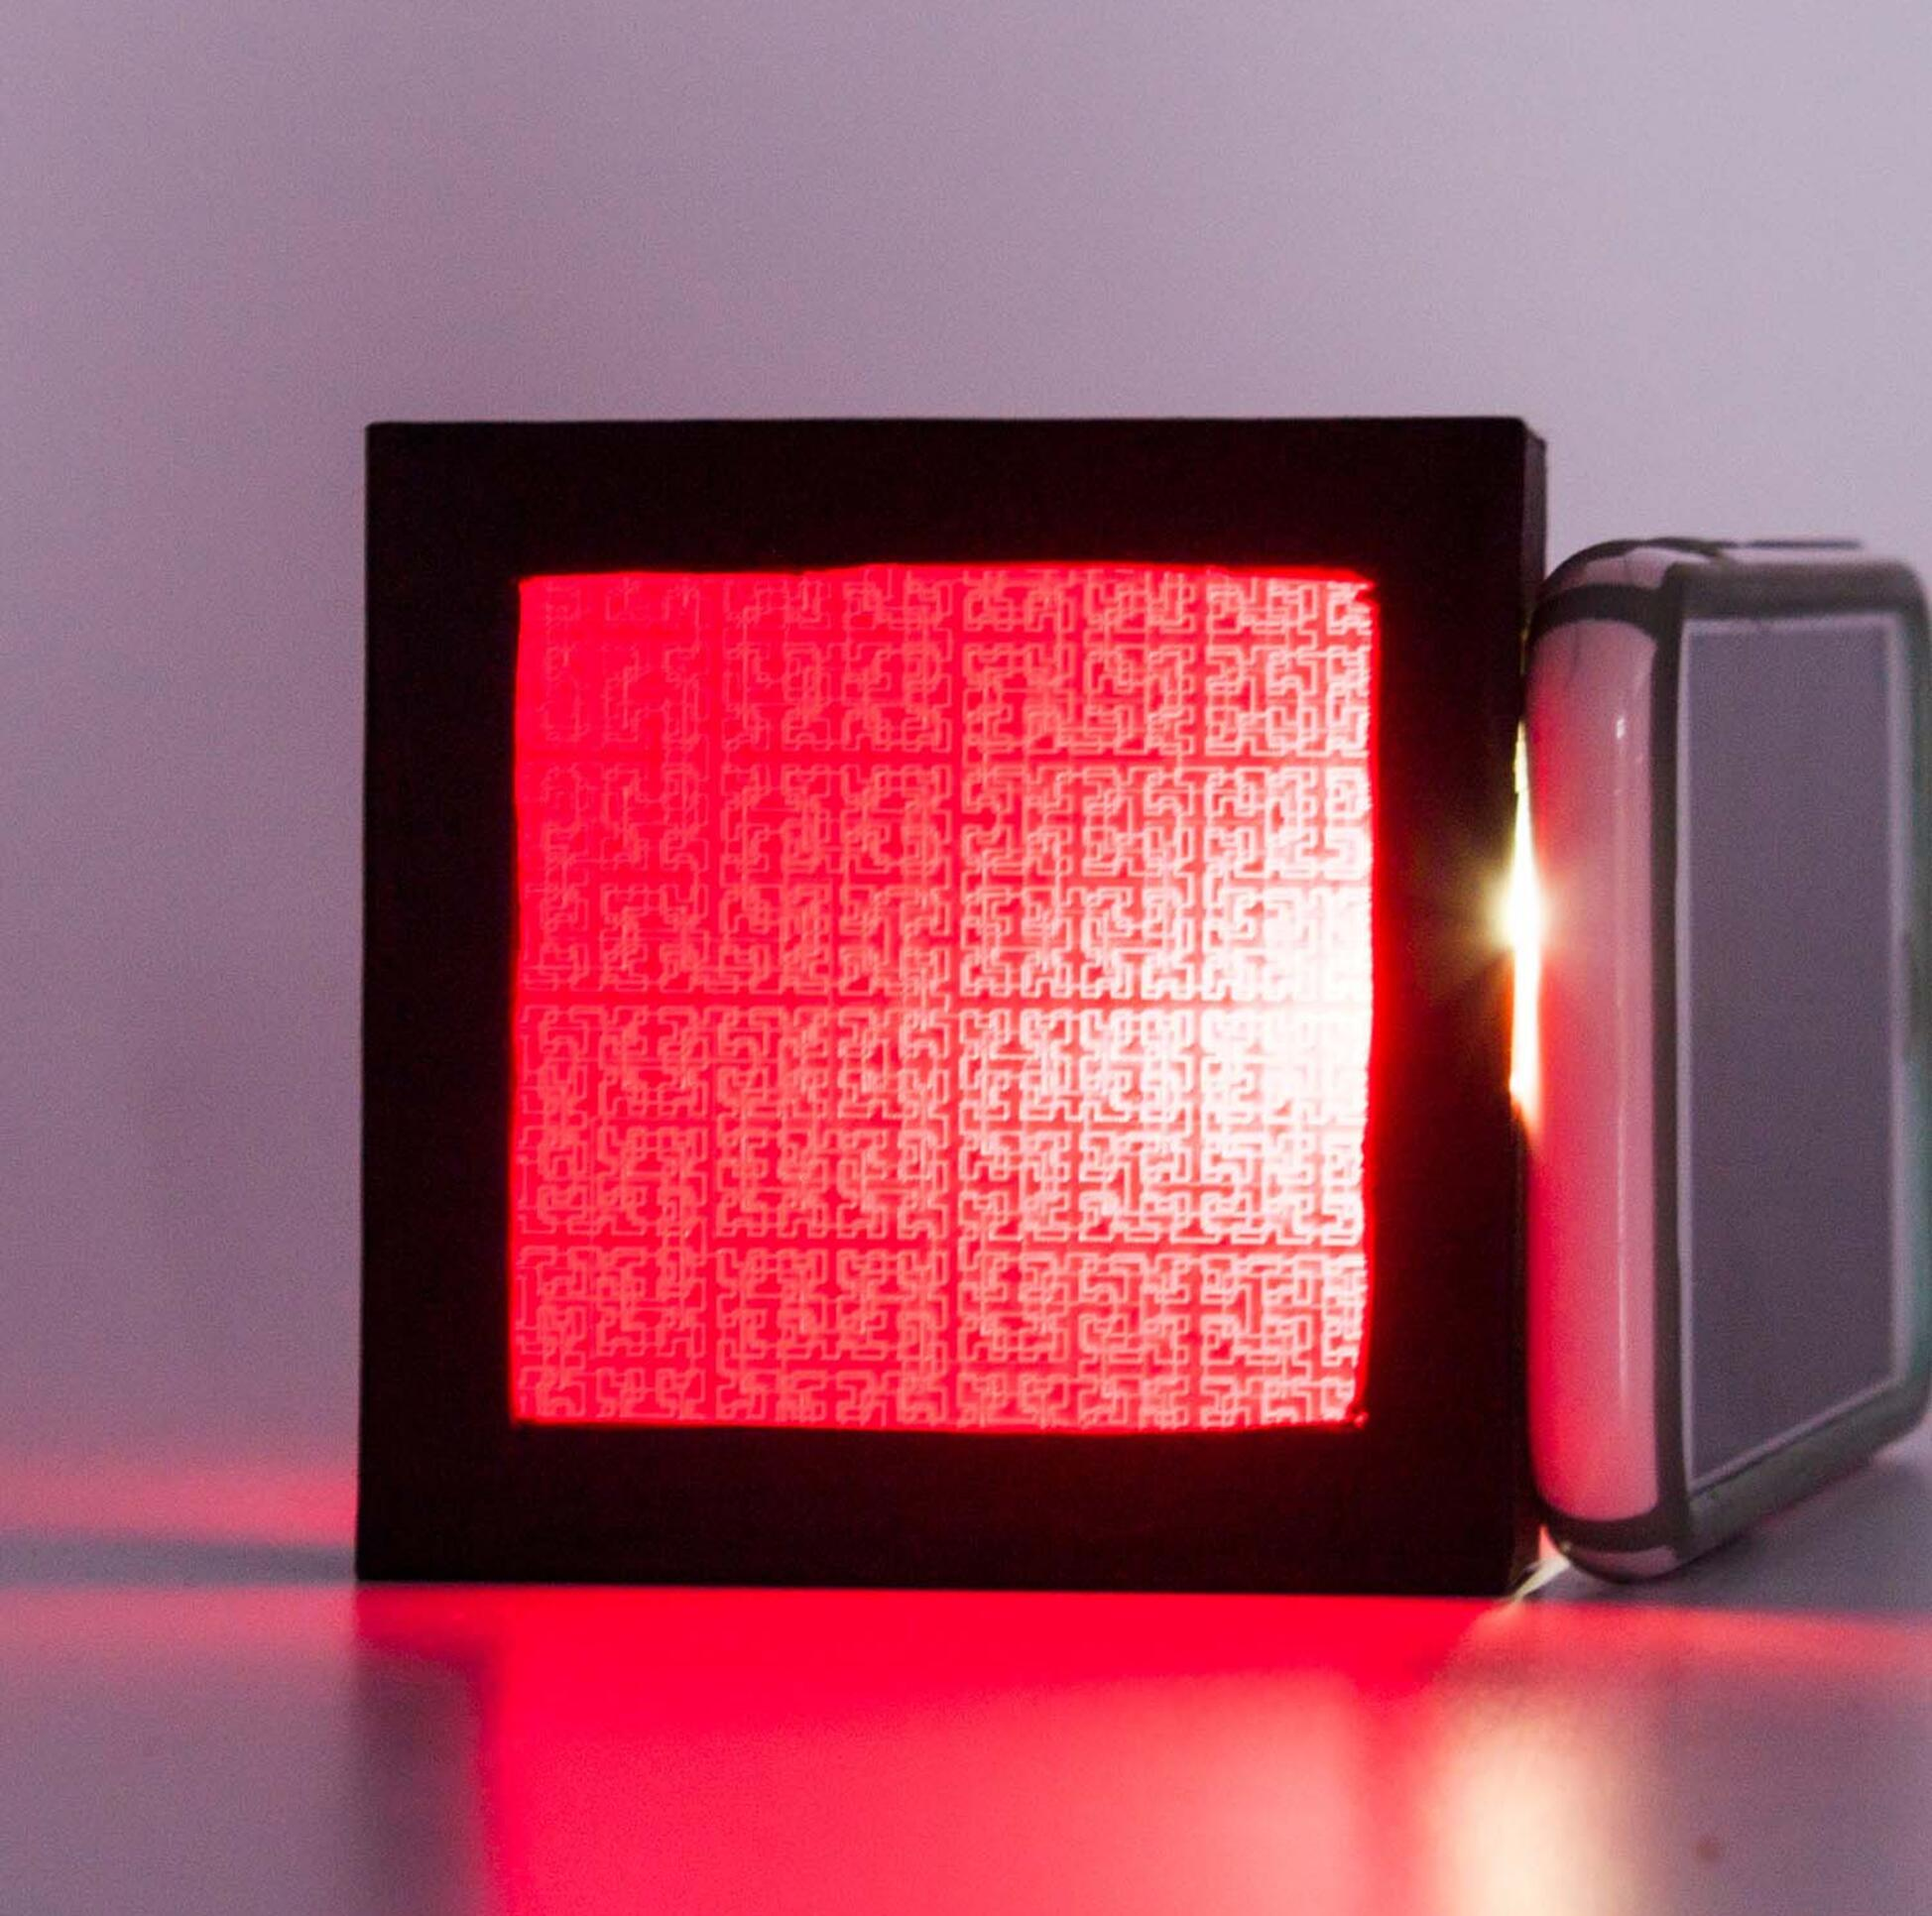 A black frame captures a red screen in which the light source behind it exposes a printed pattern. ; Alex Bacalso